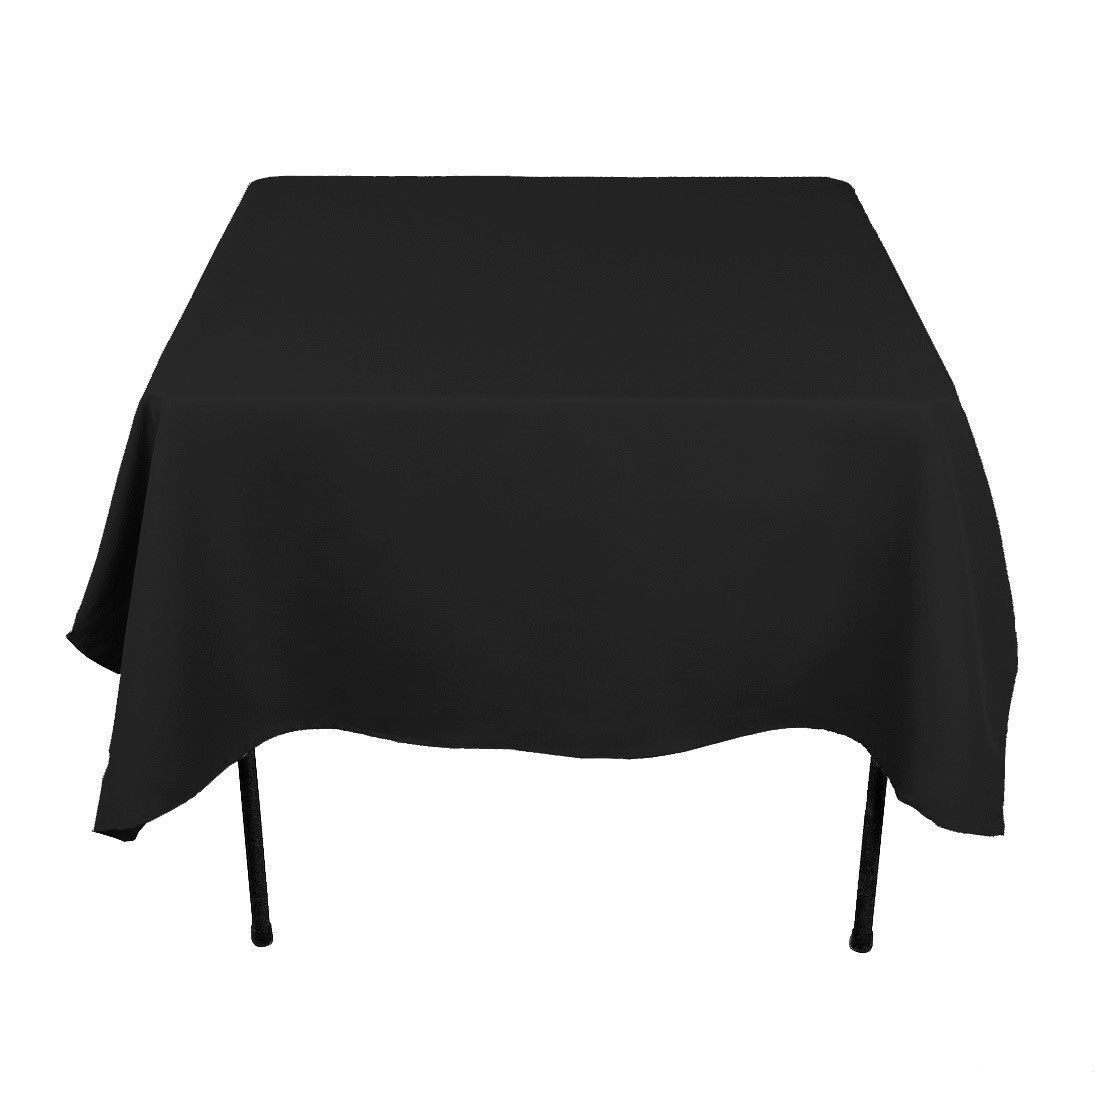 10 Square Tablecloths 72 x72  Made USA 100% Polyester Table Overlay 23 Farbes